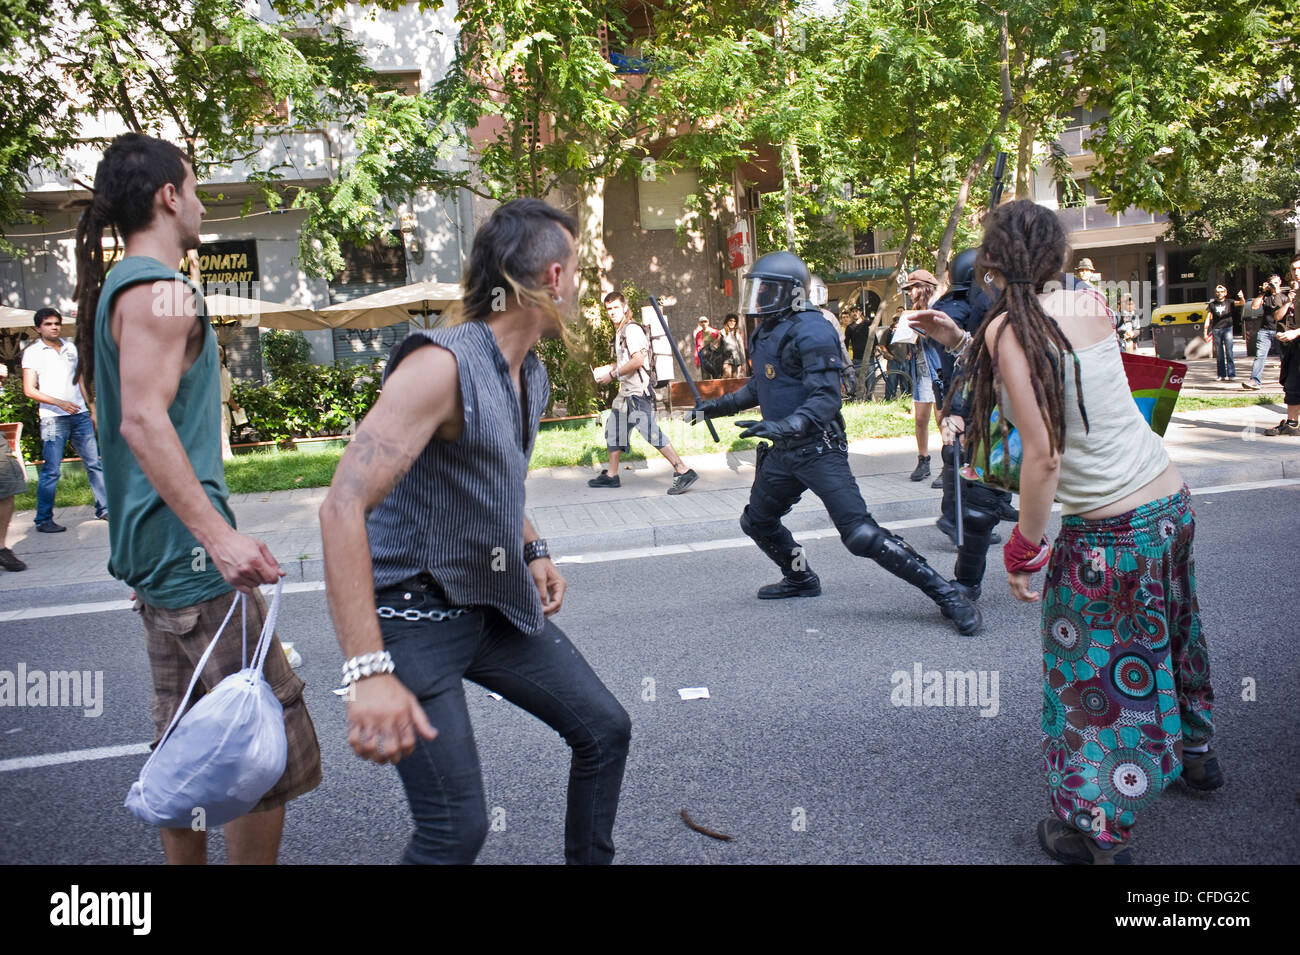 Protest of the indignants (spanish revolution) and clashes with police in Barcelona near the Catalan Parliament, - Stock Image